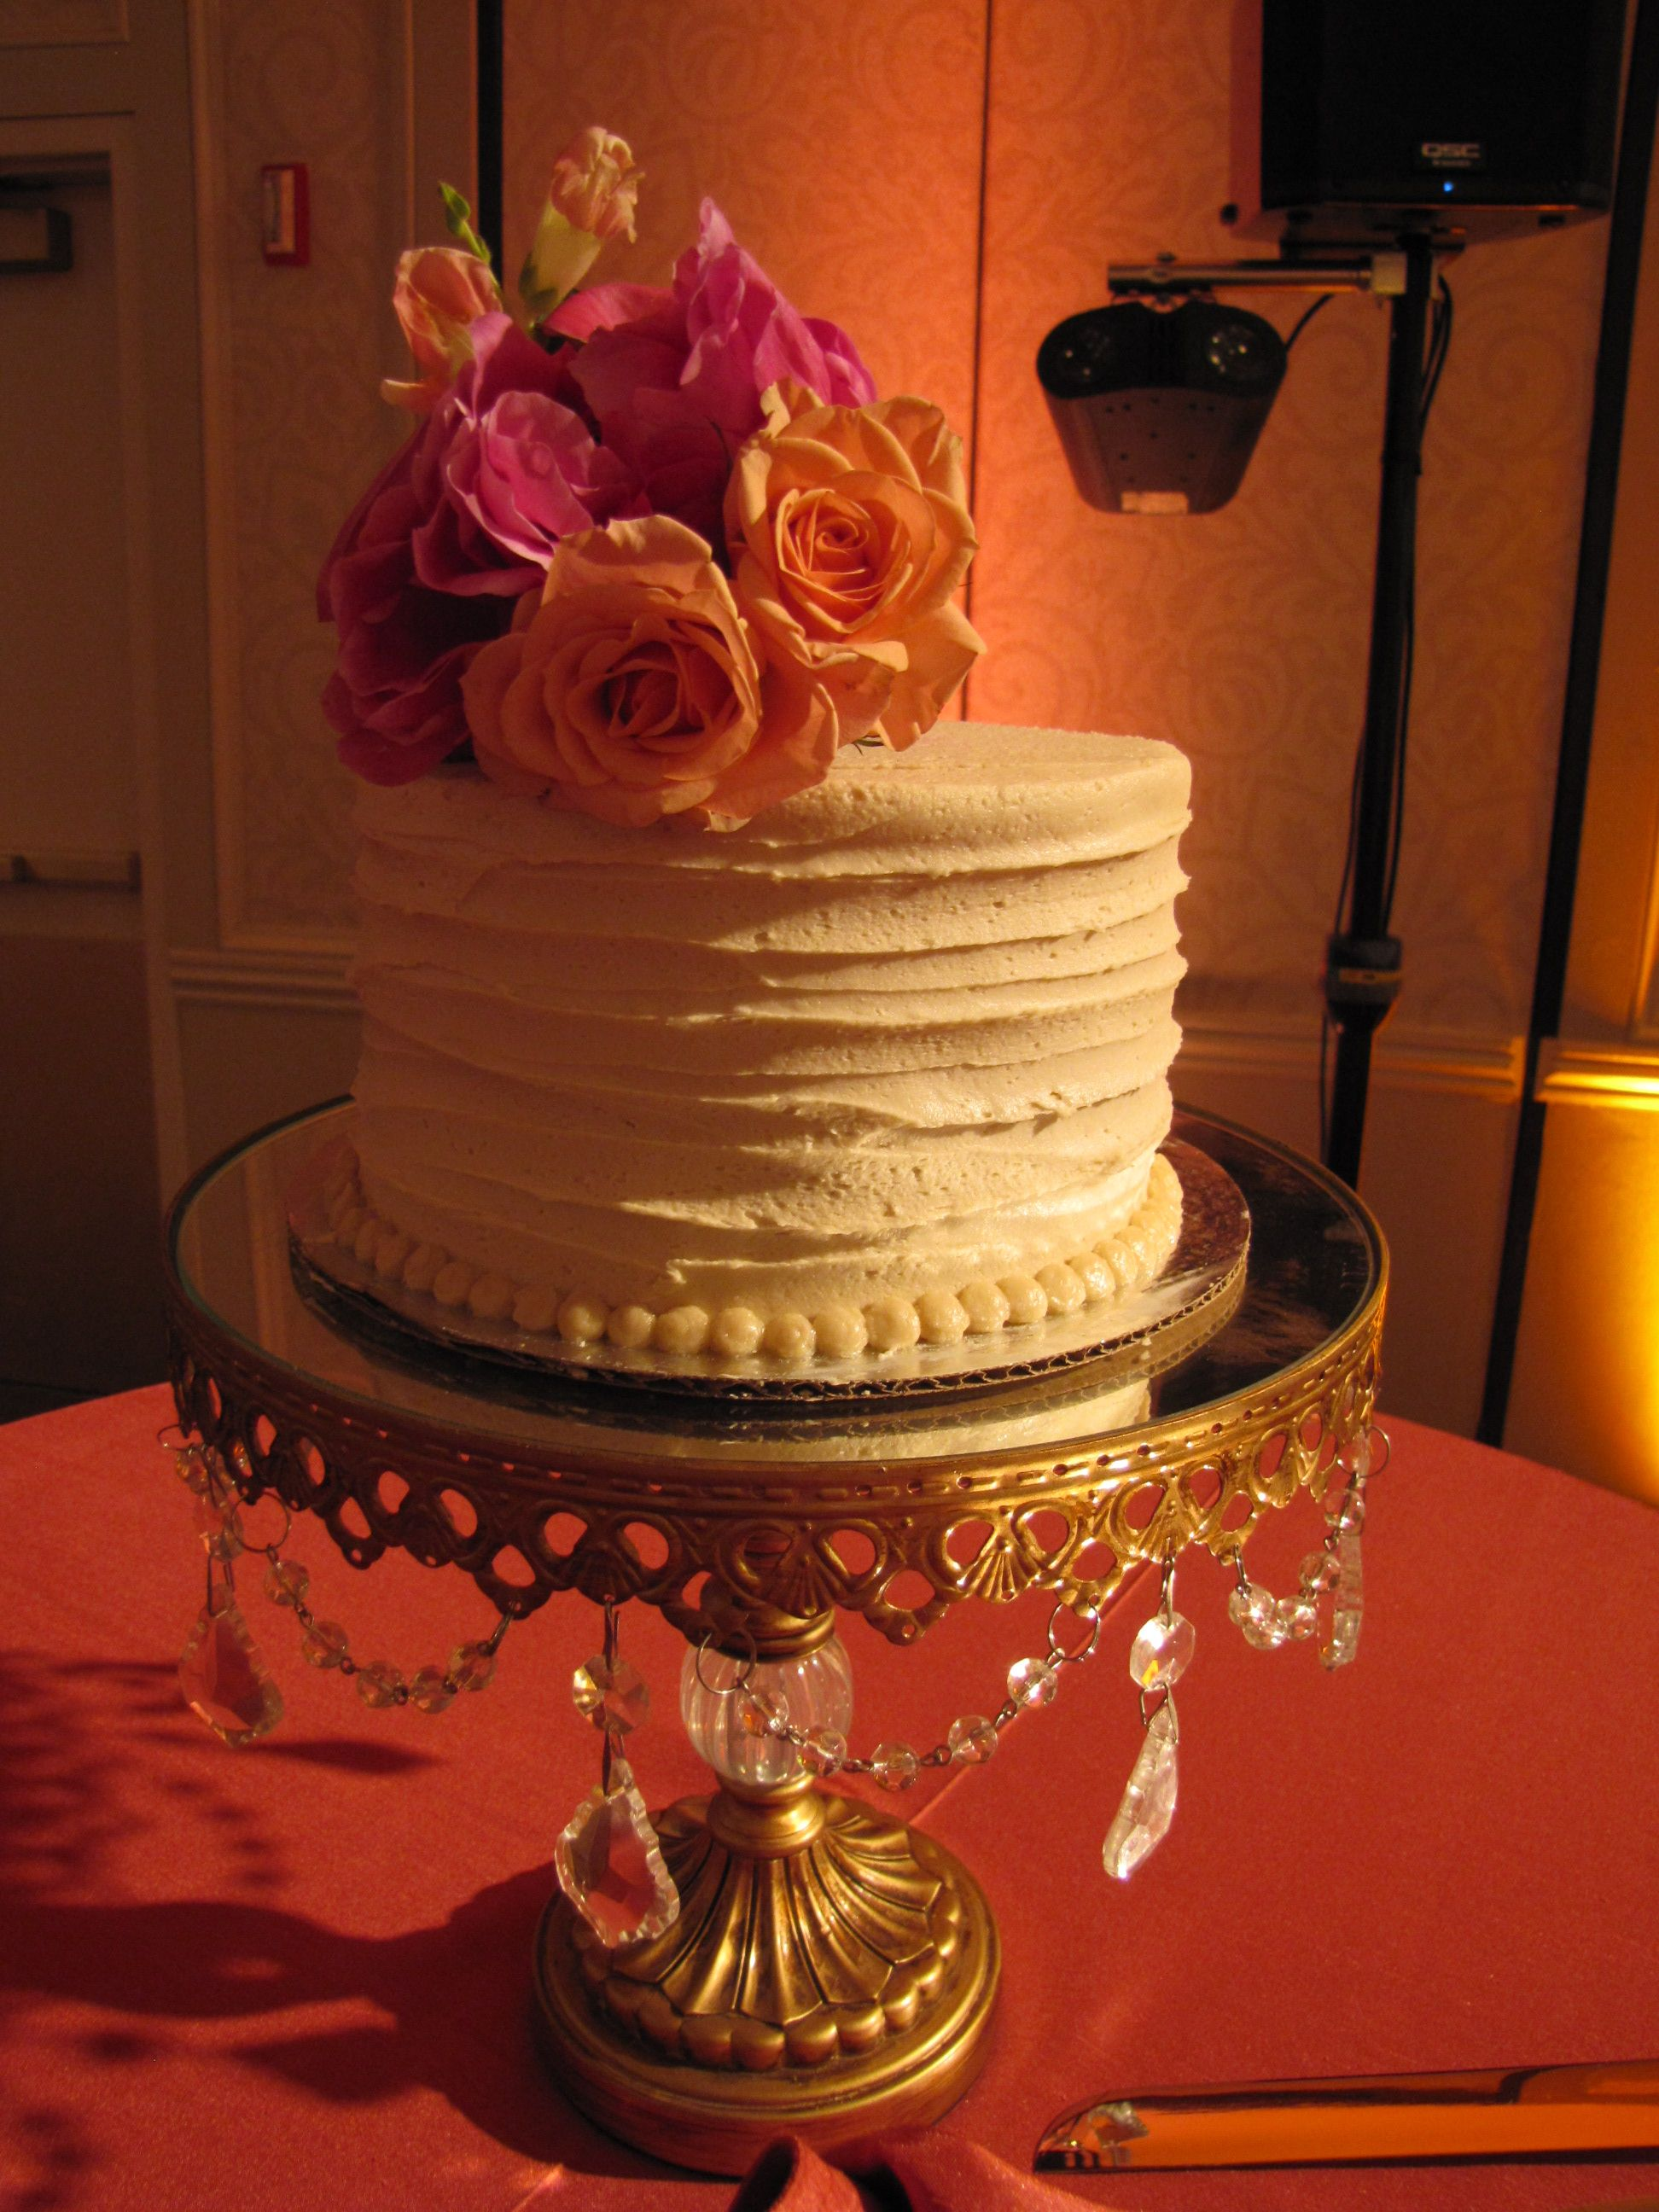 A closer look at a beautiful cake Wedding Cuisine